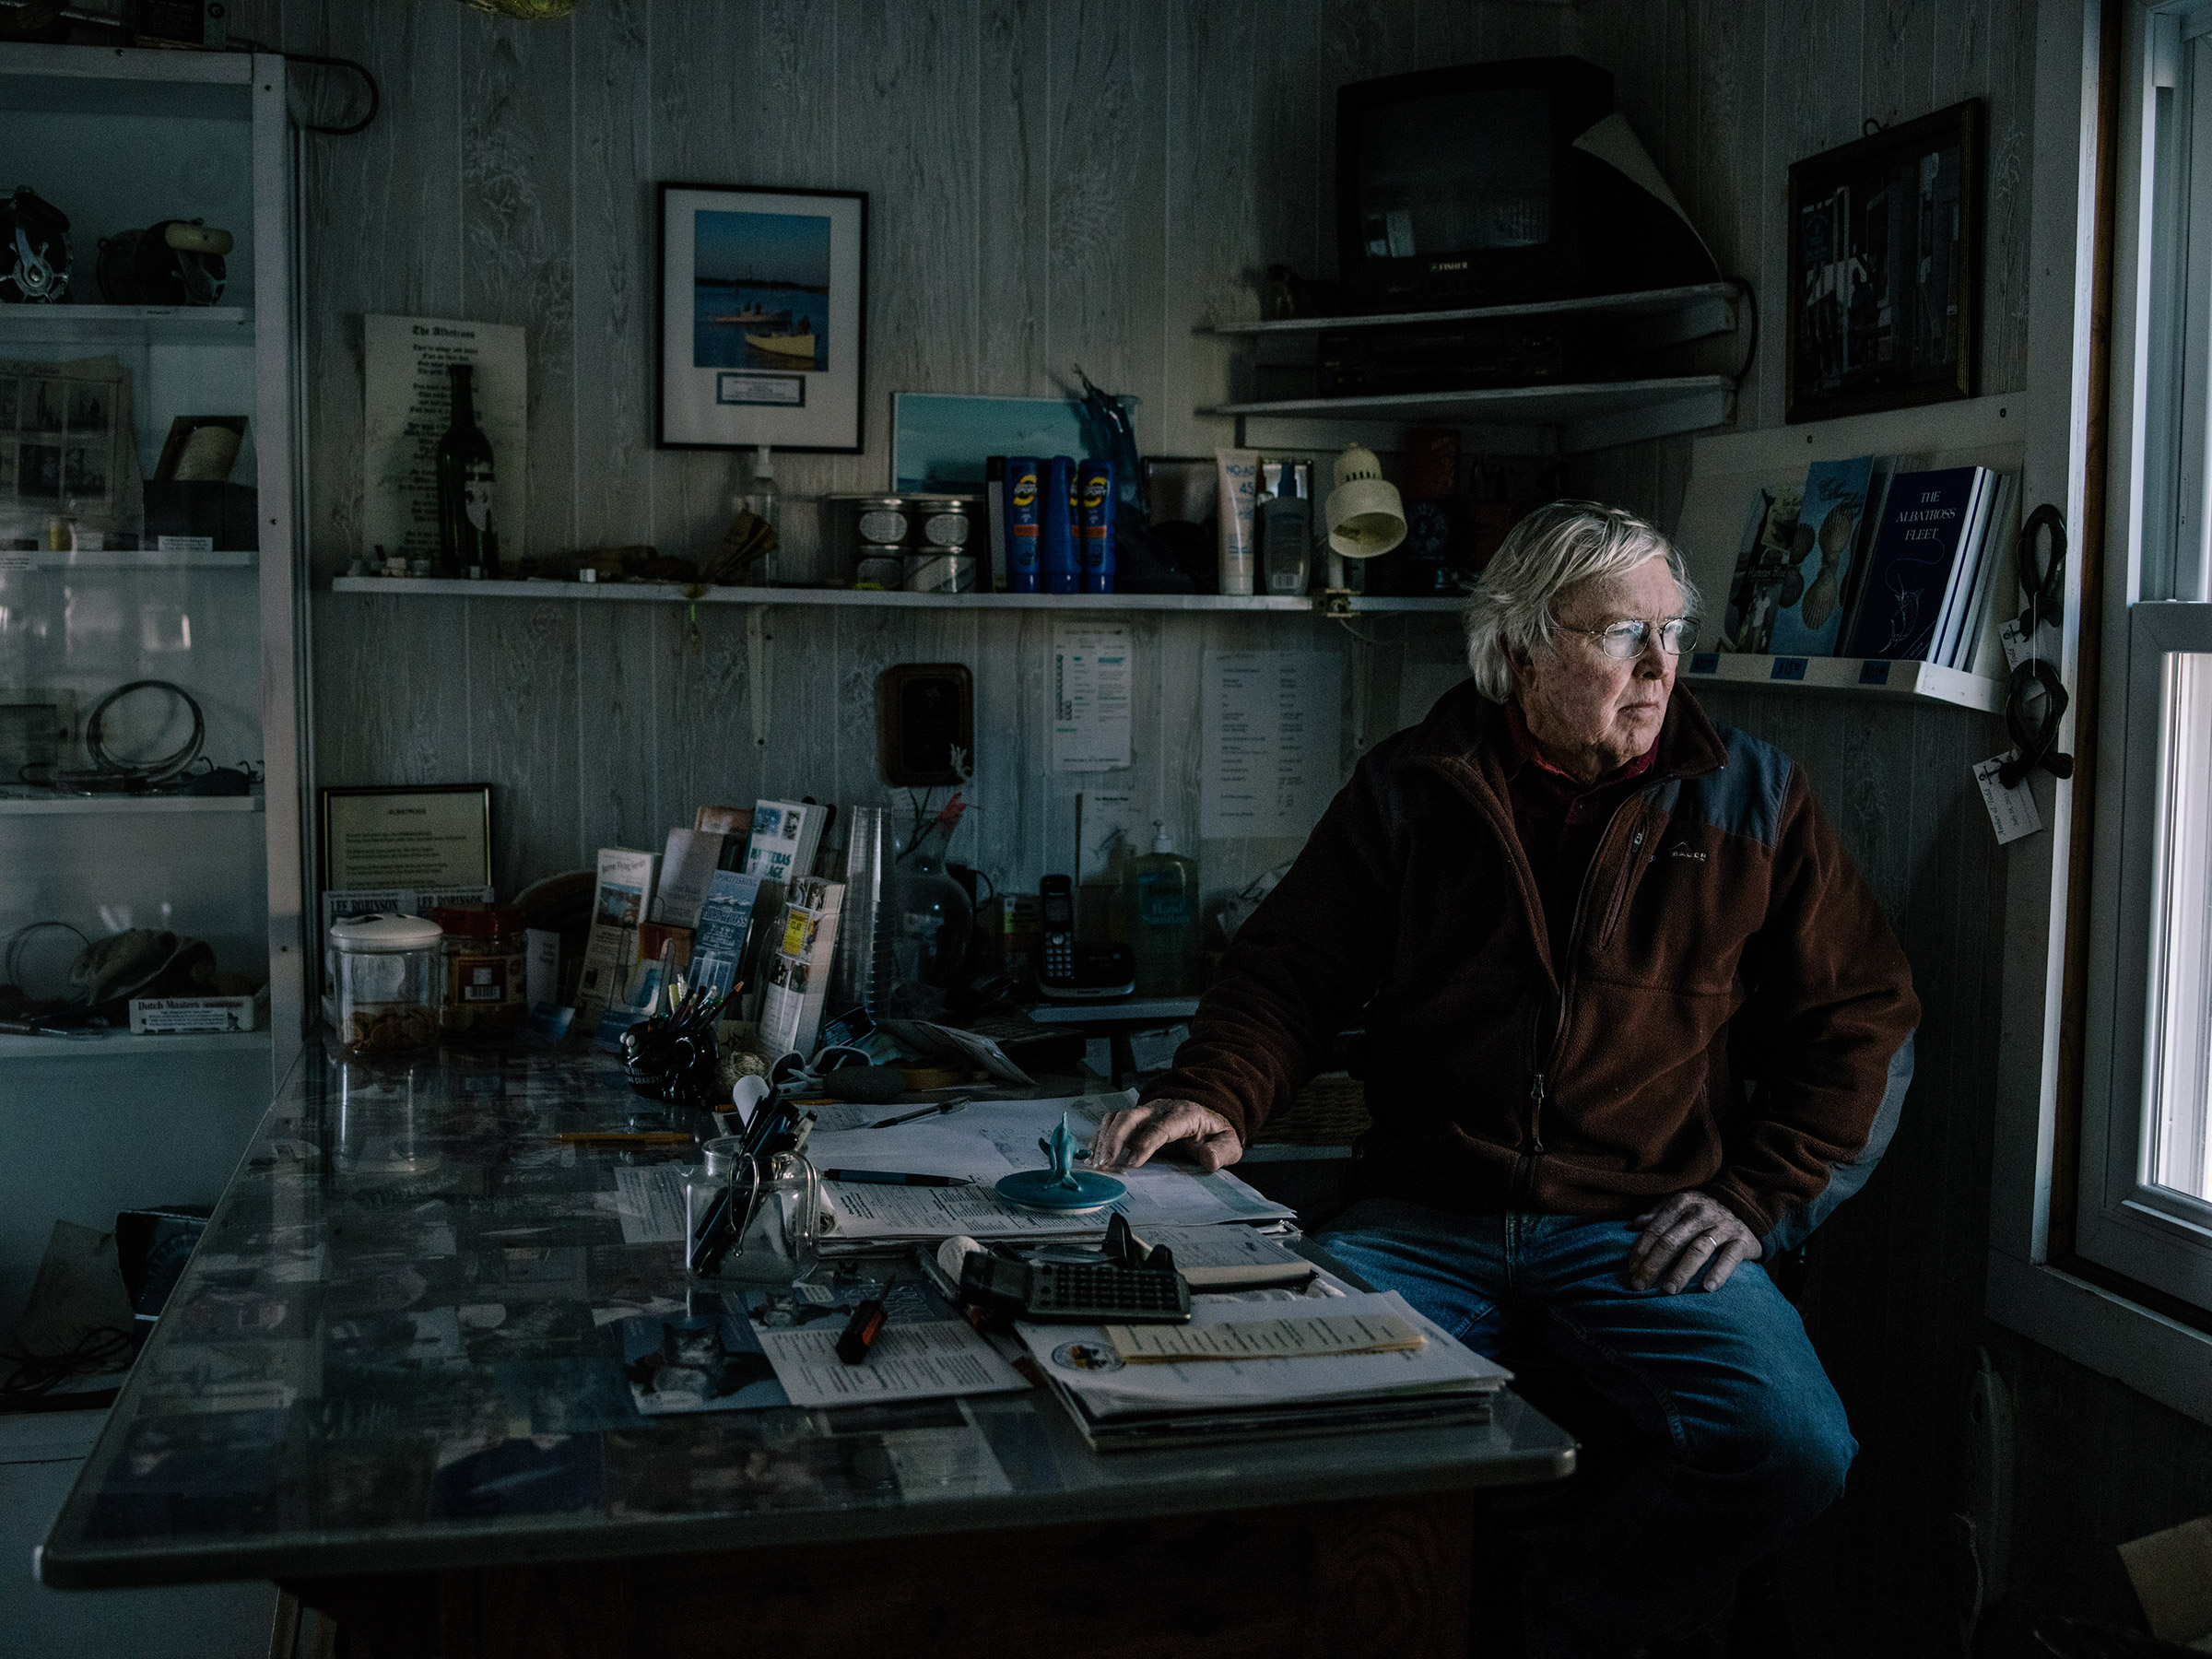 Ernie Foster, who lives in Hatteras, runs the Albatross Fleet, a deep-sea fishing business on the Outer Banks. Foster's family can be traced back several generations in Hatteras. Greg Kahn